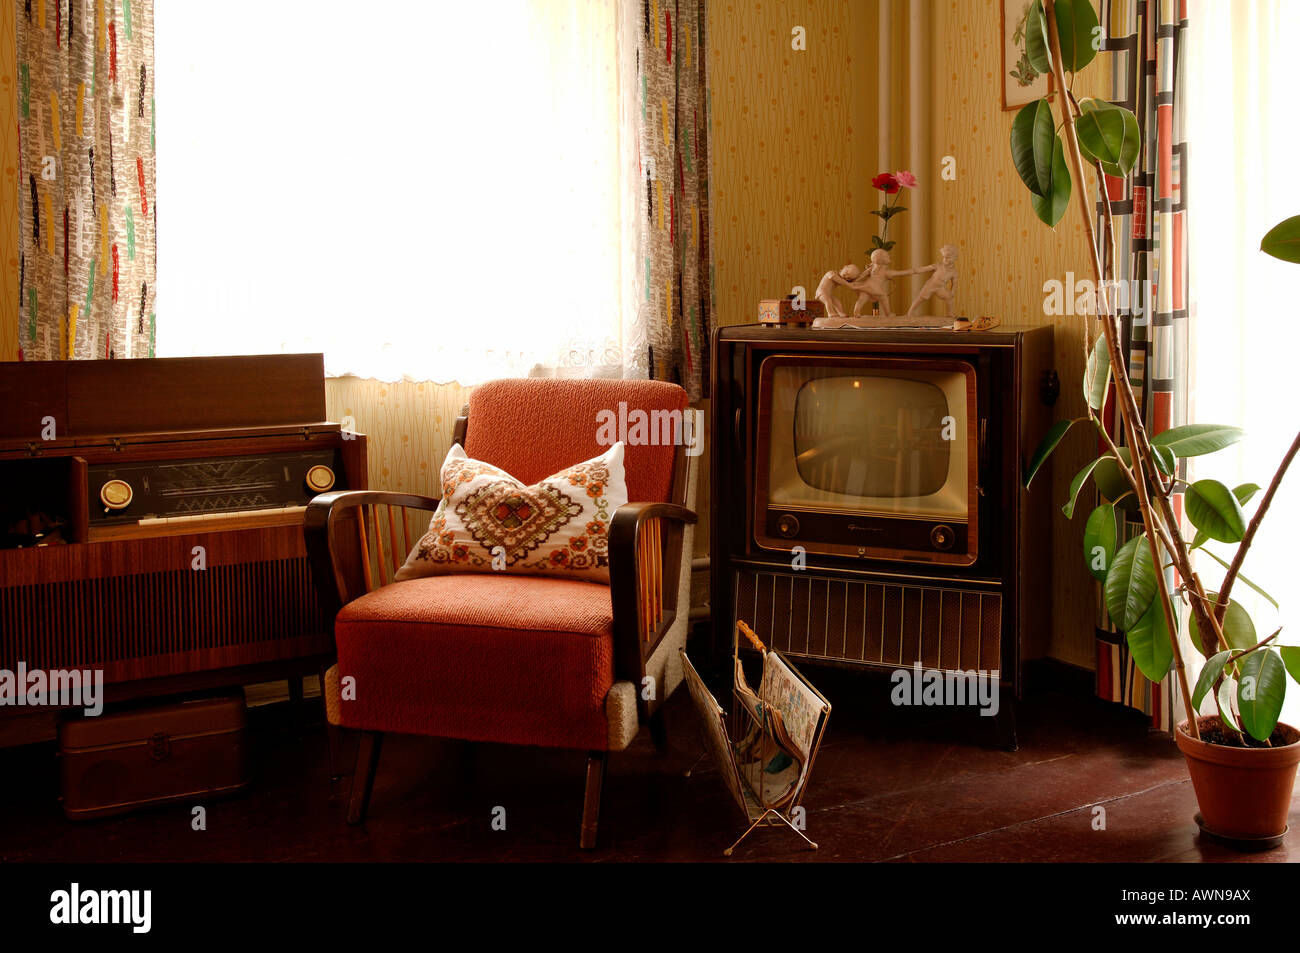 Living Room 1950s 1950s living room set with television, radio and armchair, lauf an